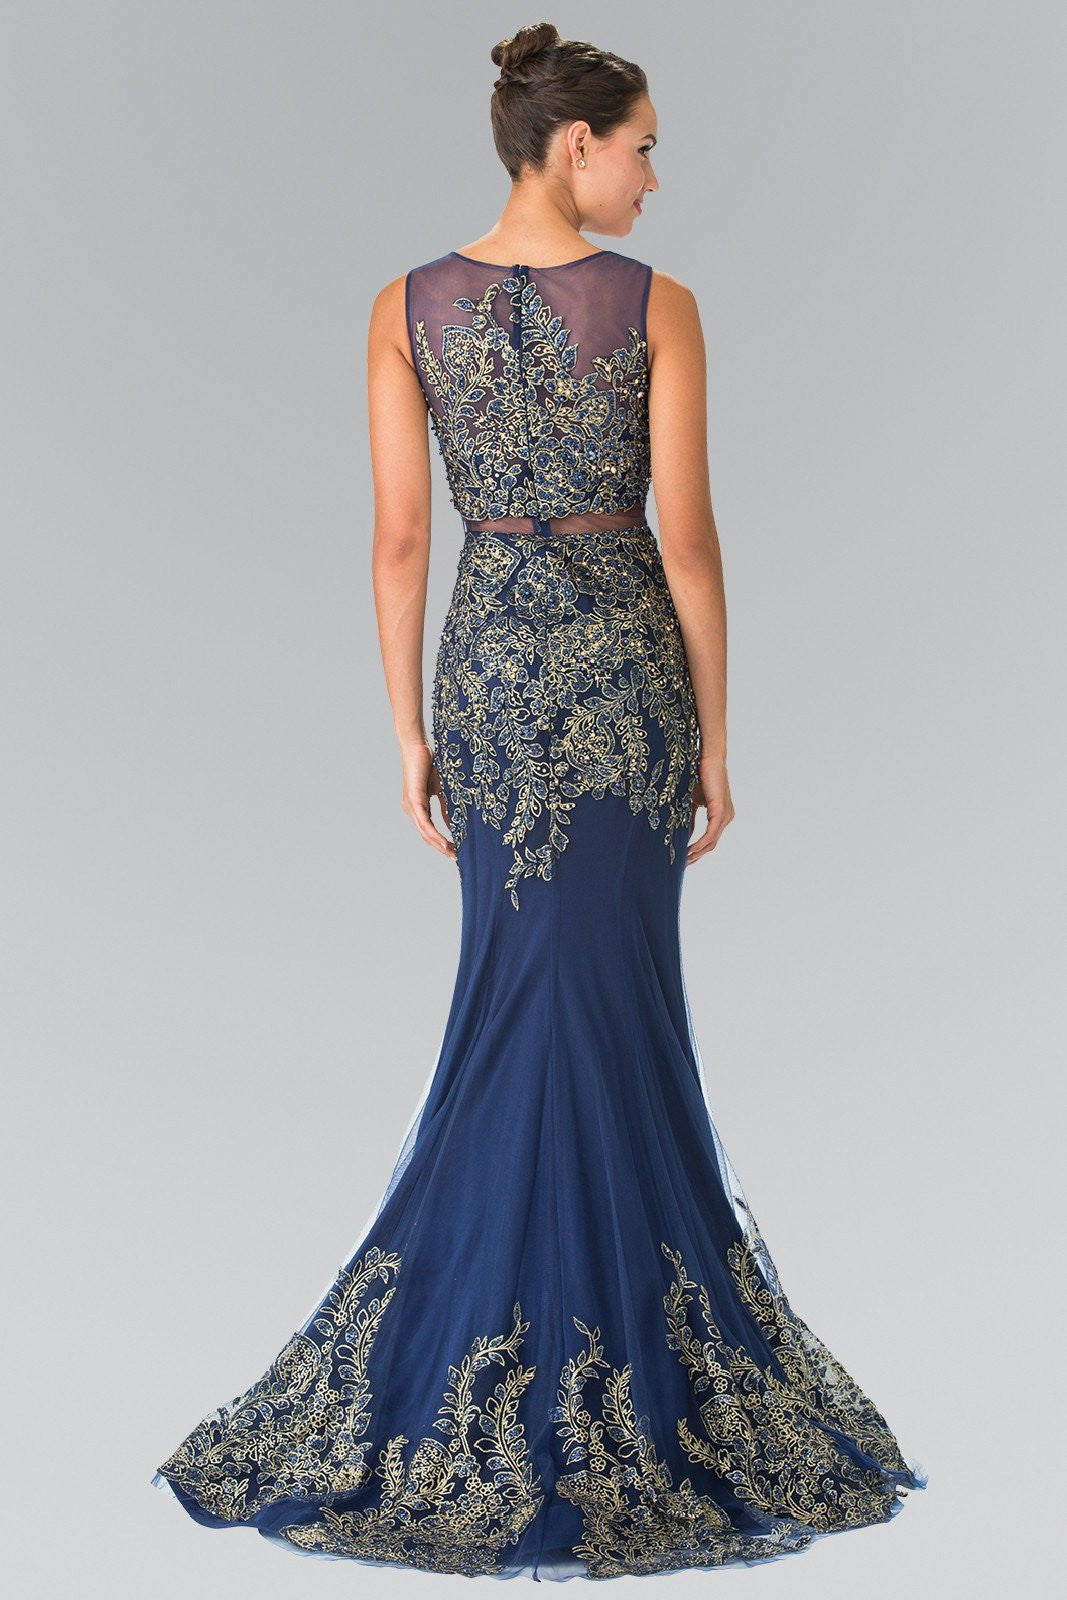 Fab Party Dress Prom Dresses